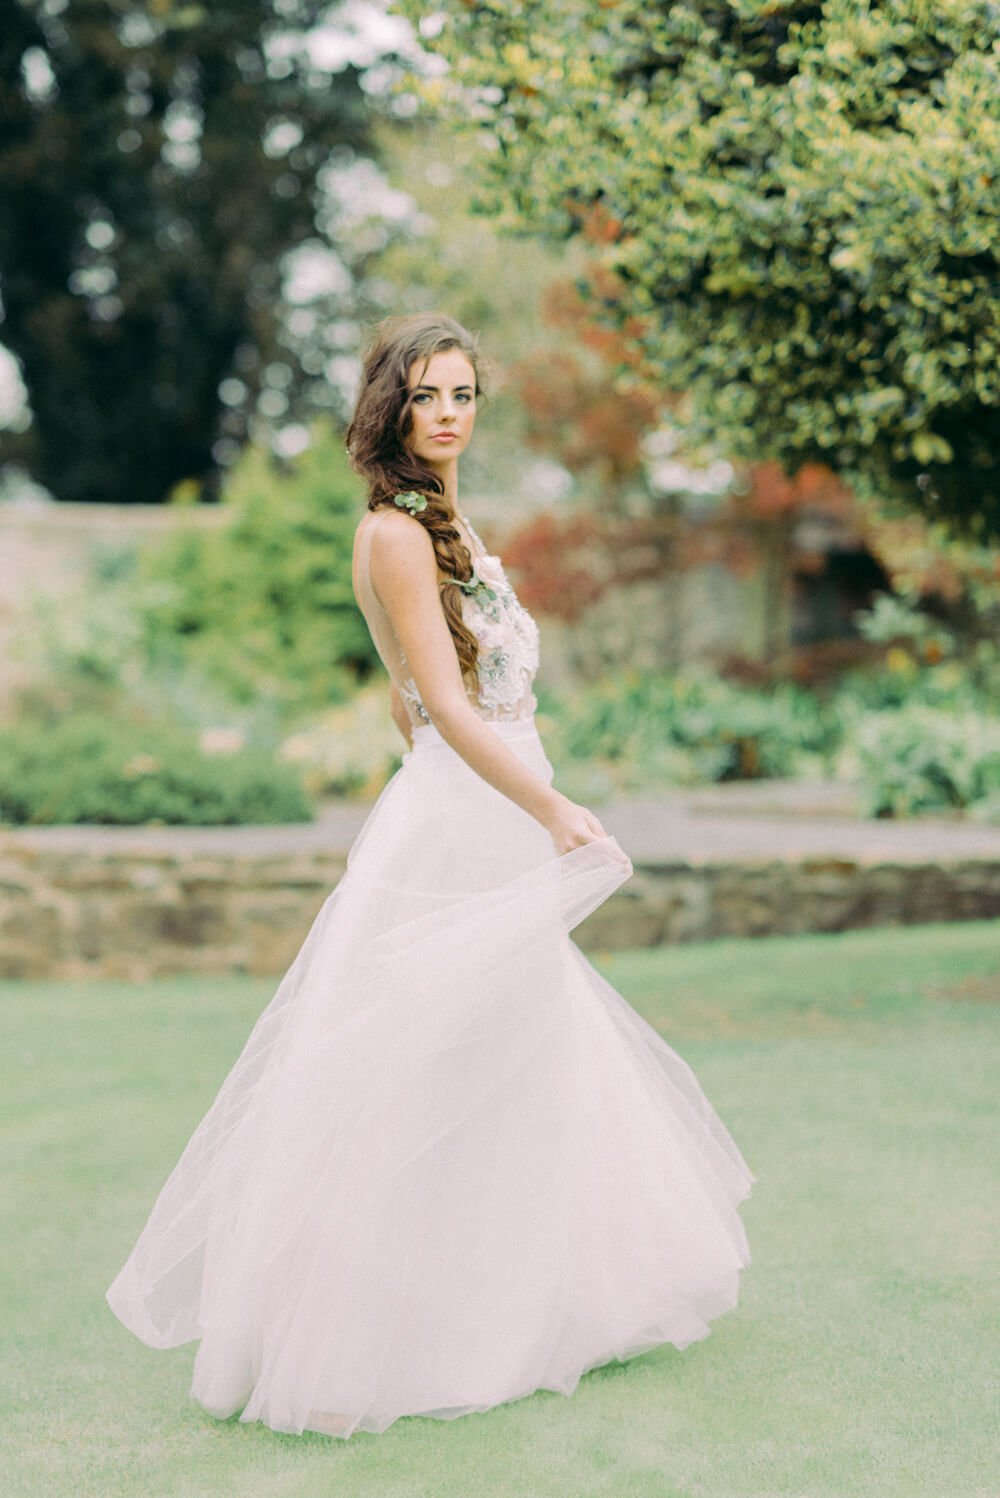 elegant dancing bride with A line style white wedding dress